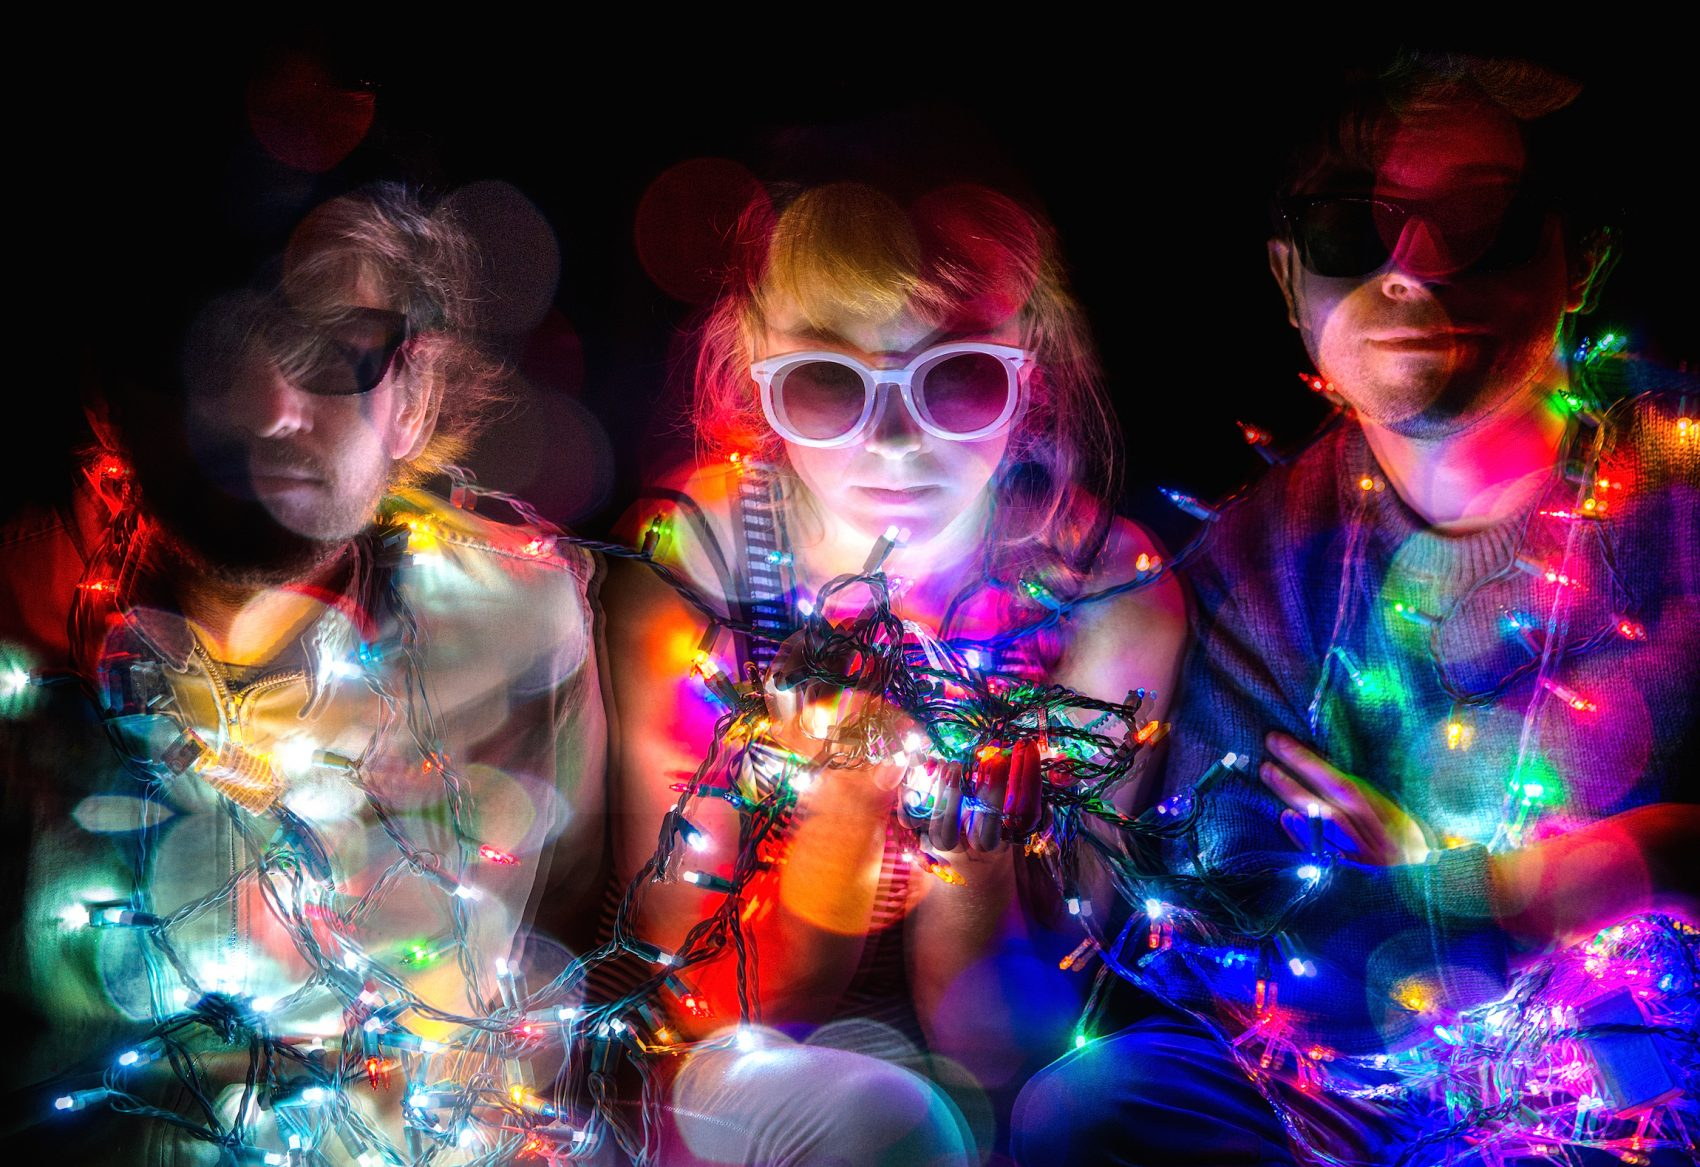 The electro-punk band Guerilla Toss. (Courtesy Walter Wlodarczyk)